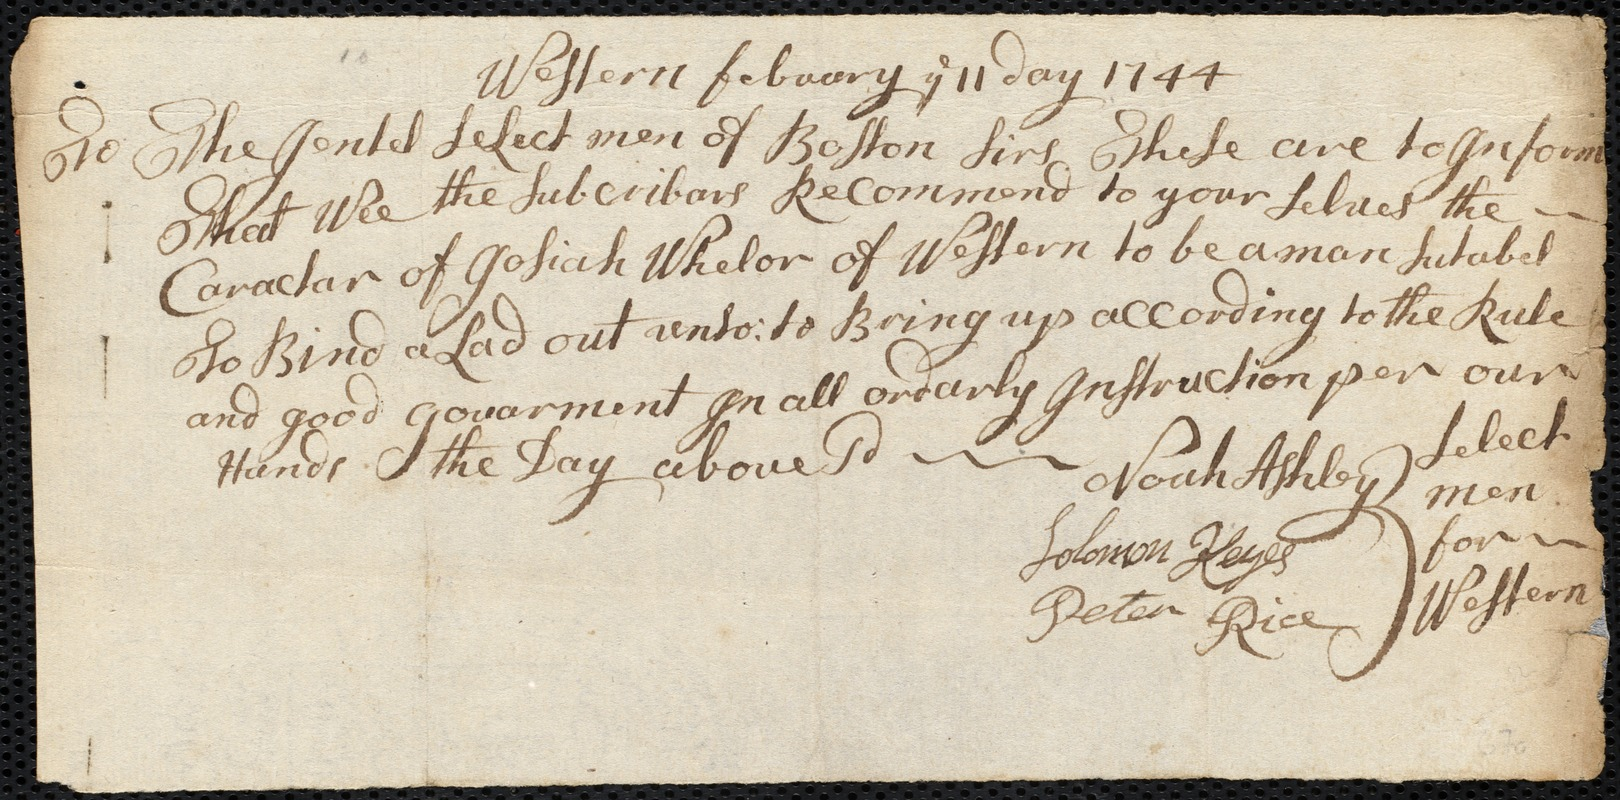 Document of indenture: Servant: Bowen, Timothy. Master: Wheeler, Josiah [Wheler, Josia]. Town of Master: Western. Selectmen of the town of Western autograph document signed to the Overseers of the Poor of Boston: Endorsement Certificate for Josia Wheler.